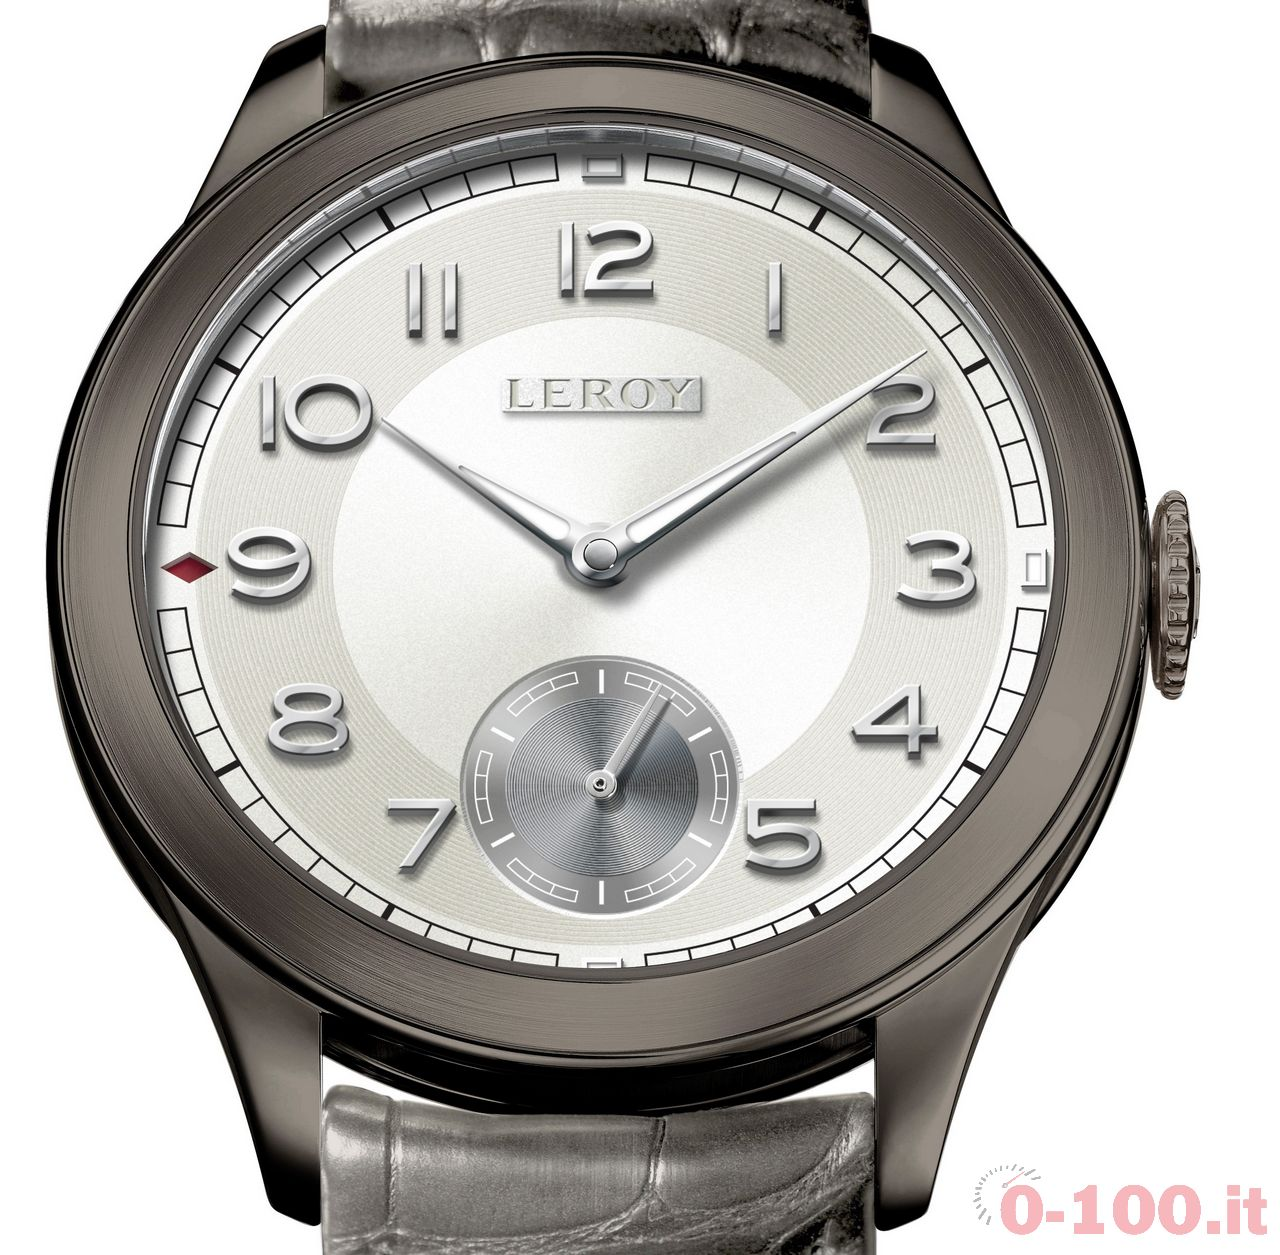 only-watch-2015-leroy-chronometre-observatoire-piece-unique-only-watch_0-100